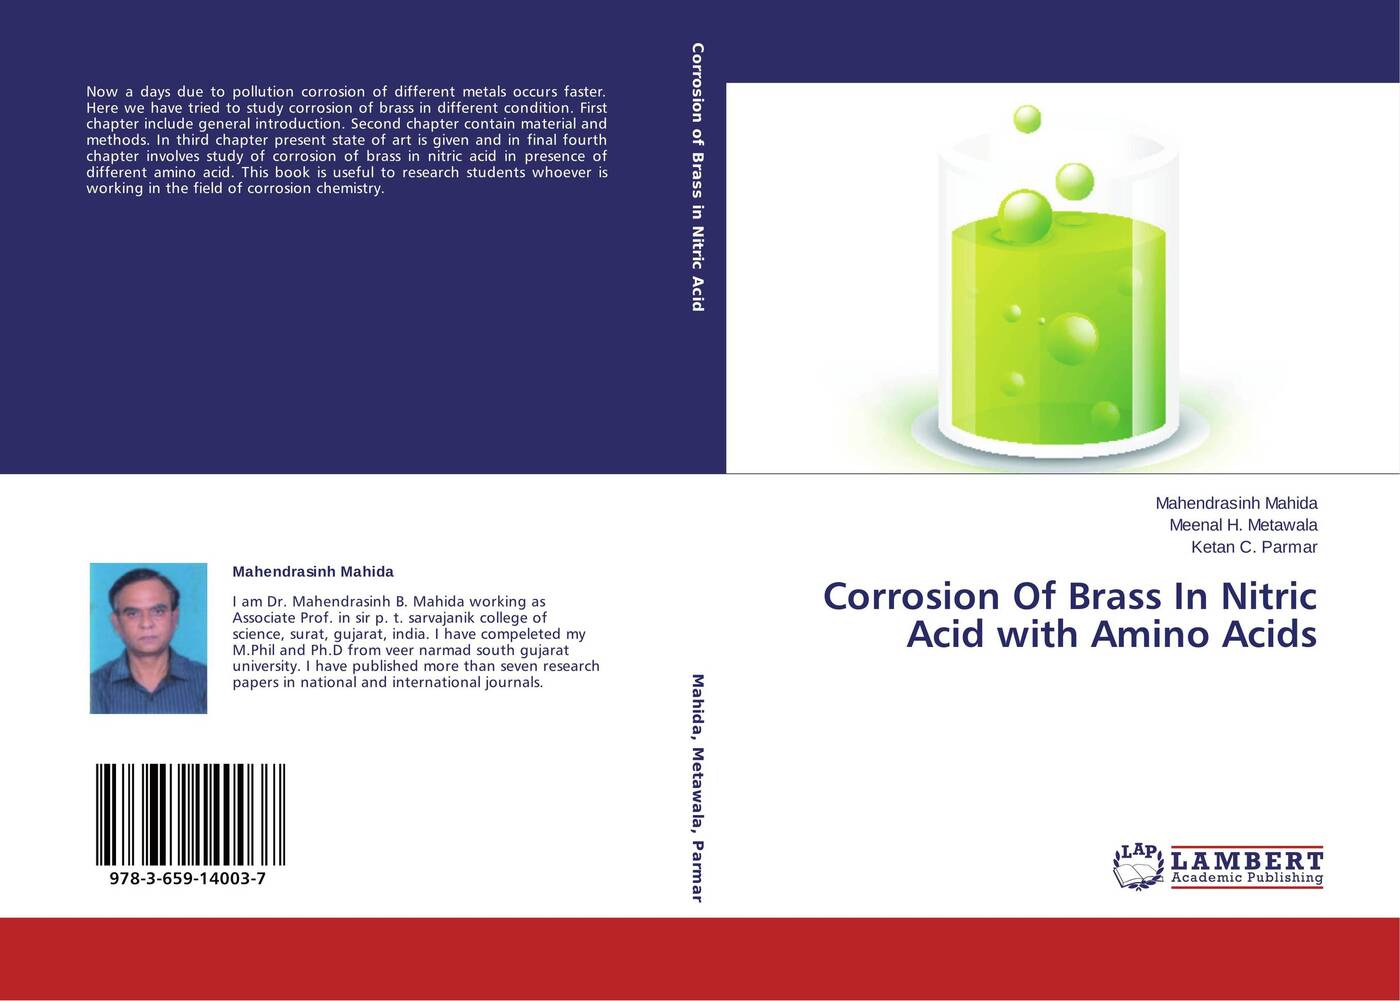 Mahendrasinh Mahida,Meenal H. Metawala and Ketan C. Parmar Corrosion Of Brass In Nitric Acid with Amino Acids the corrosion of hot dip galvanized rebars in concrete